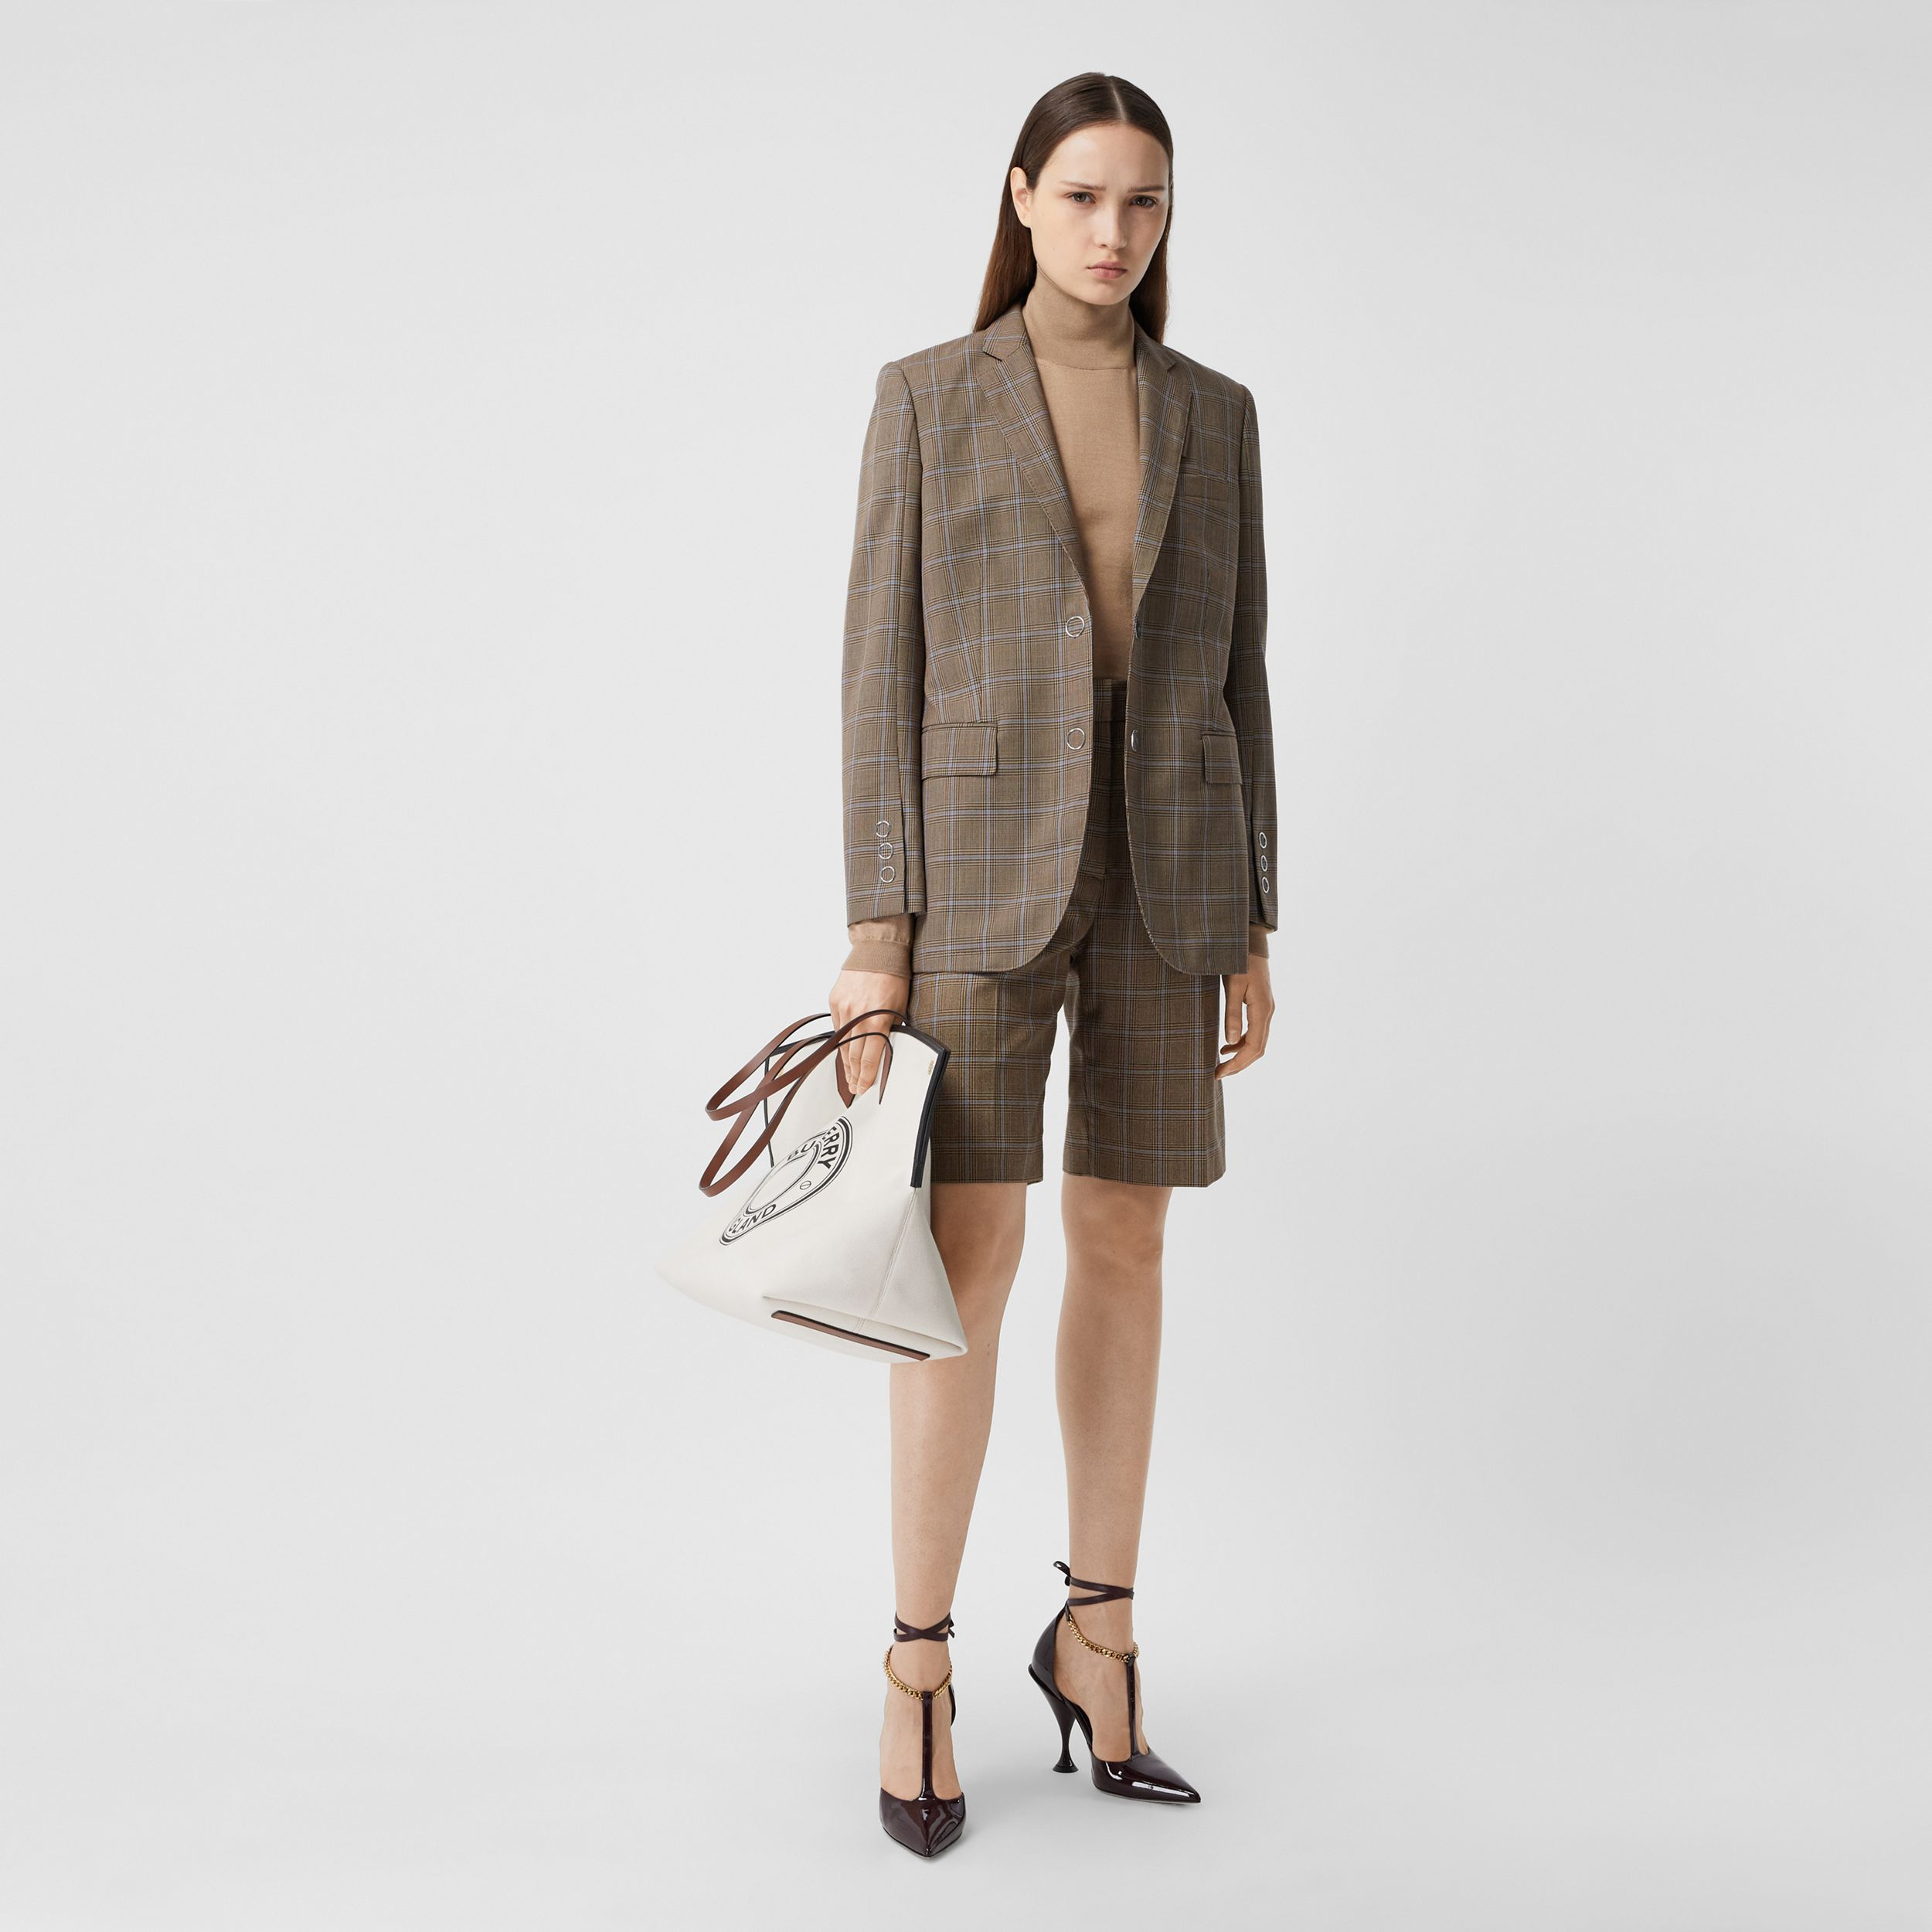 Prince of Wales Check Wool Tailored Jacket in Birch Brown - Women | Burberry - 1